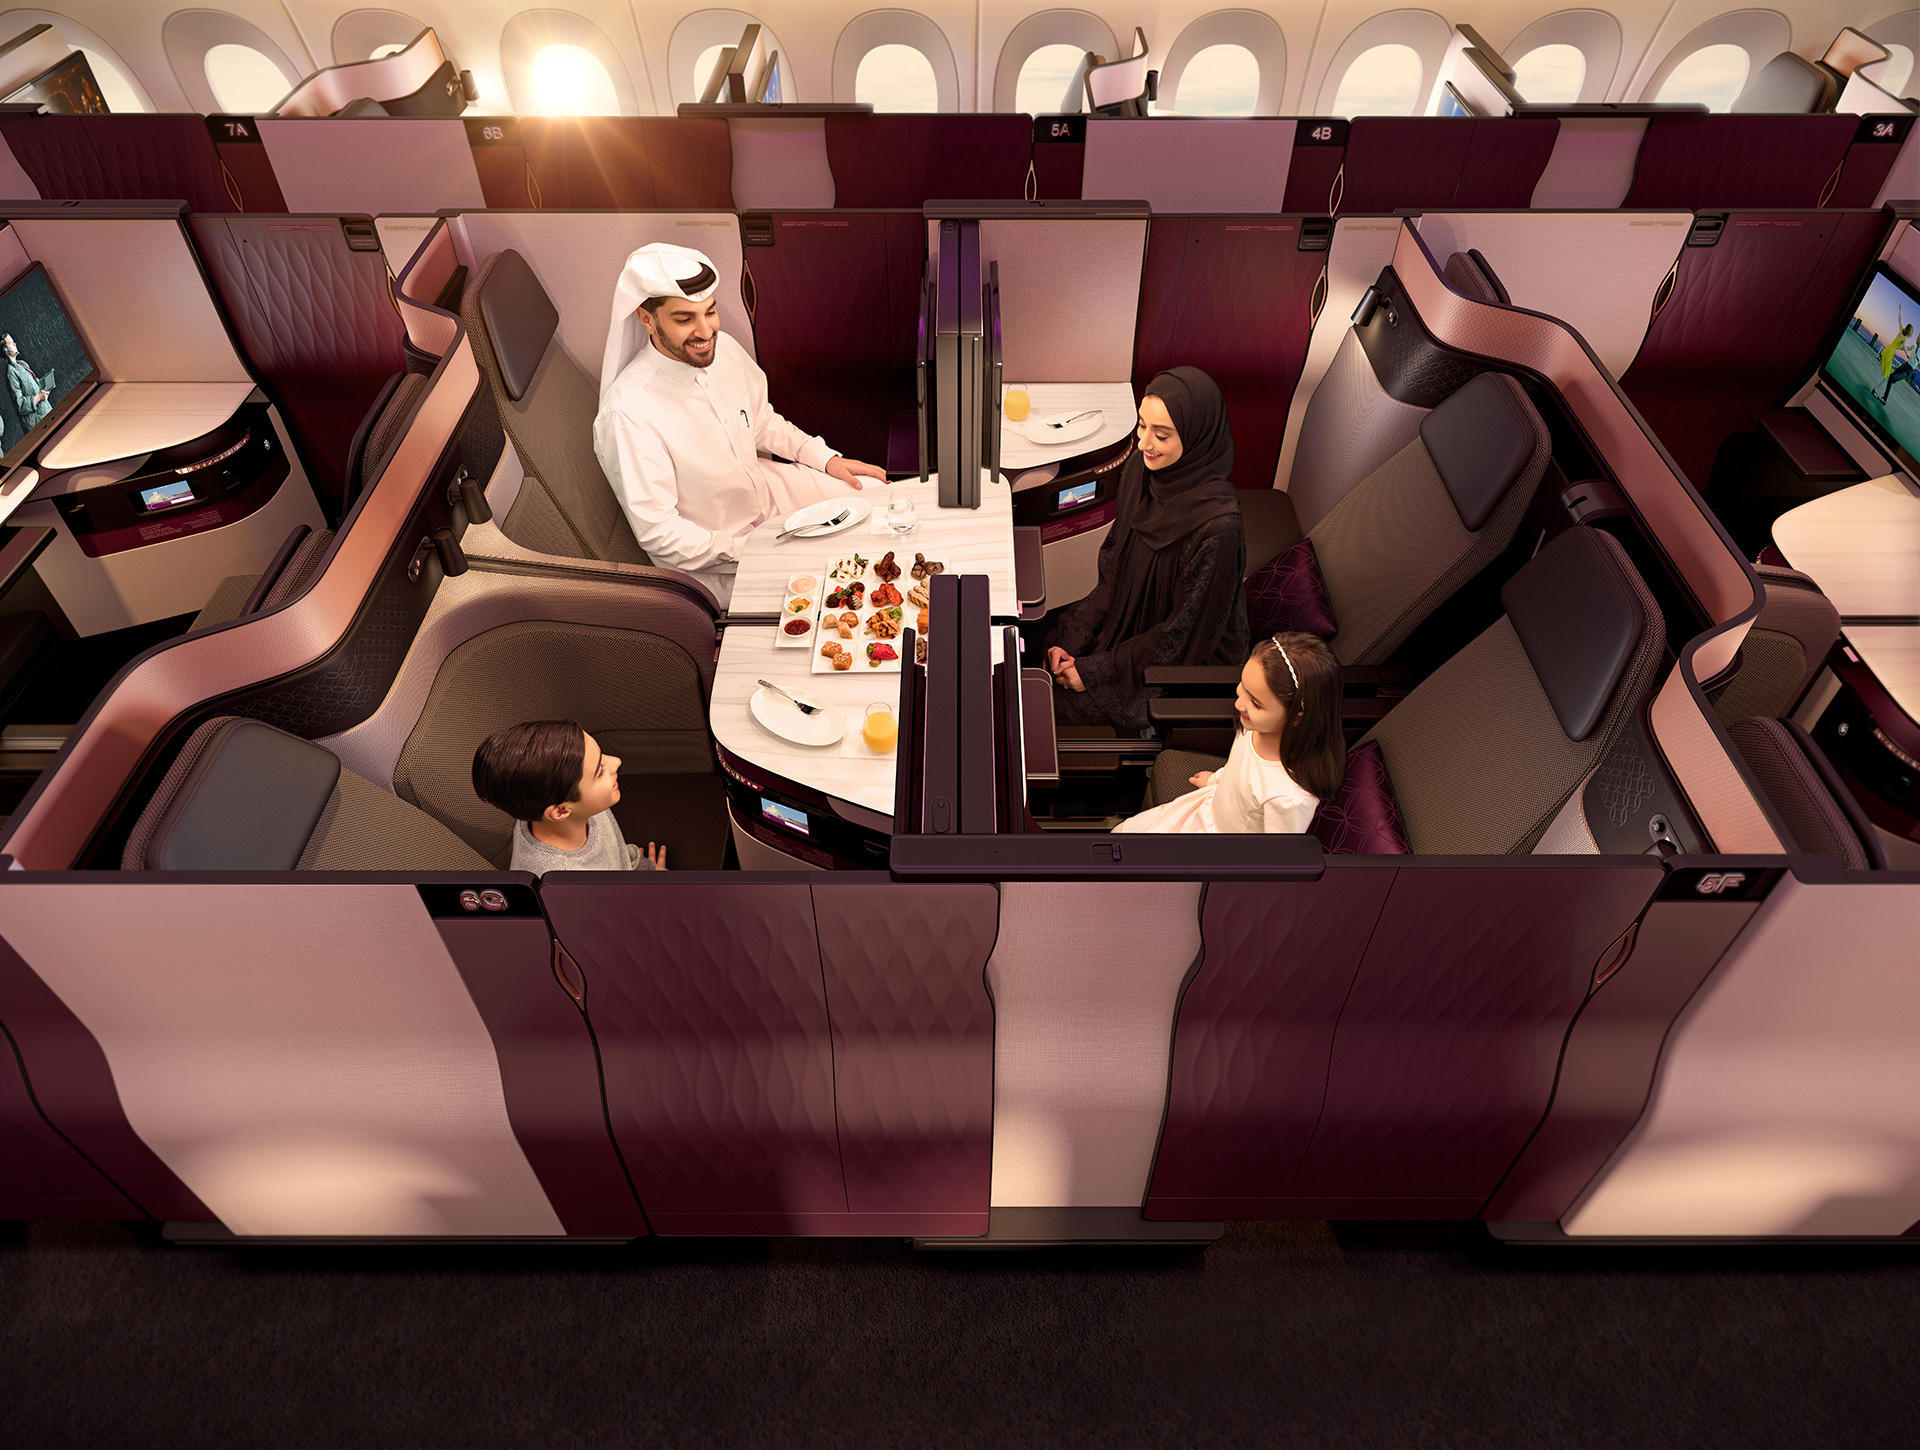 Qatar Airways' First Class Cabin designed by PriestmanGoode and Qatar Airways provides passengers tables large enough for work and dining | Paul Priestman | PriestmanGoode | STIRworld